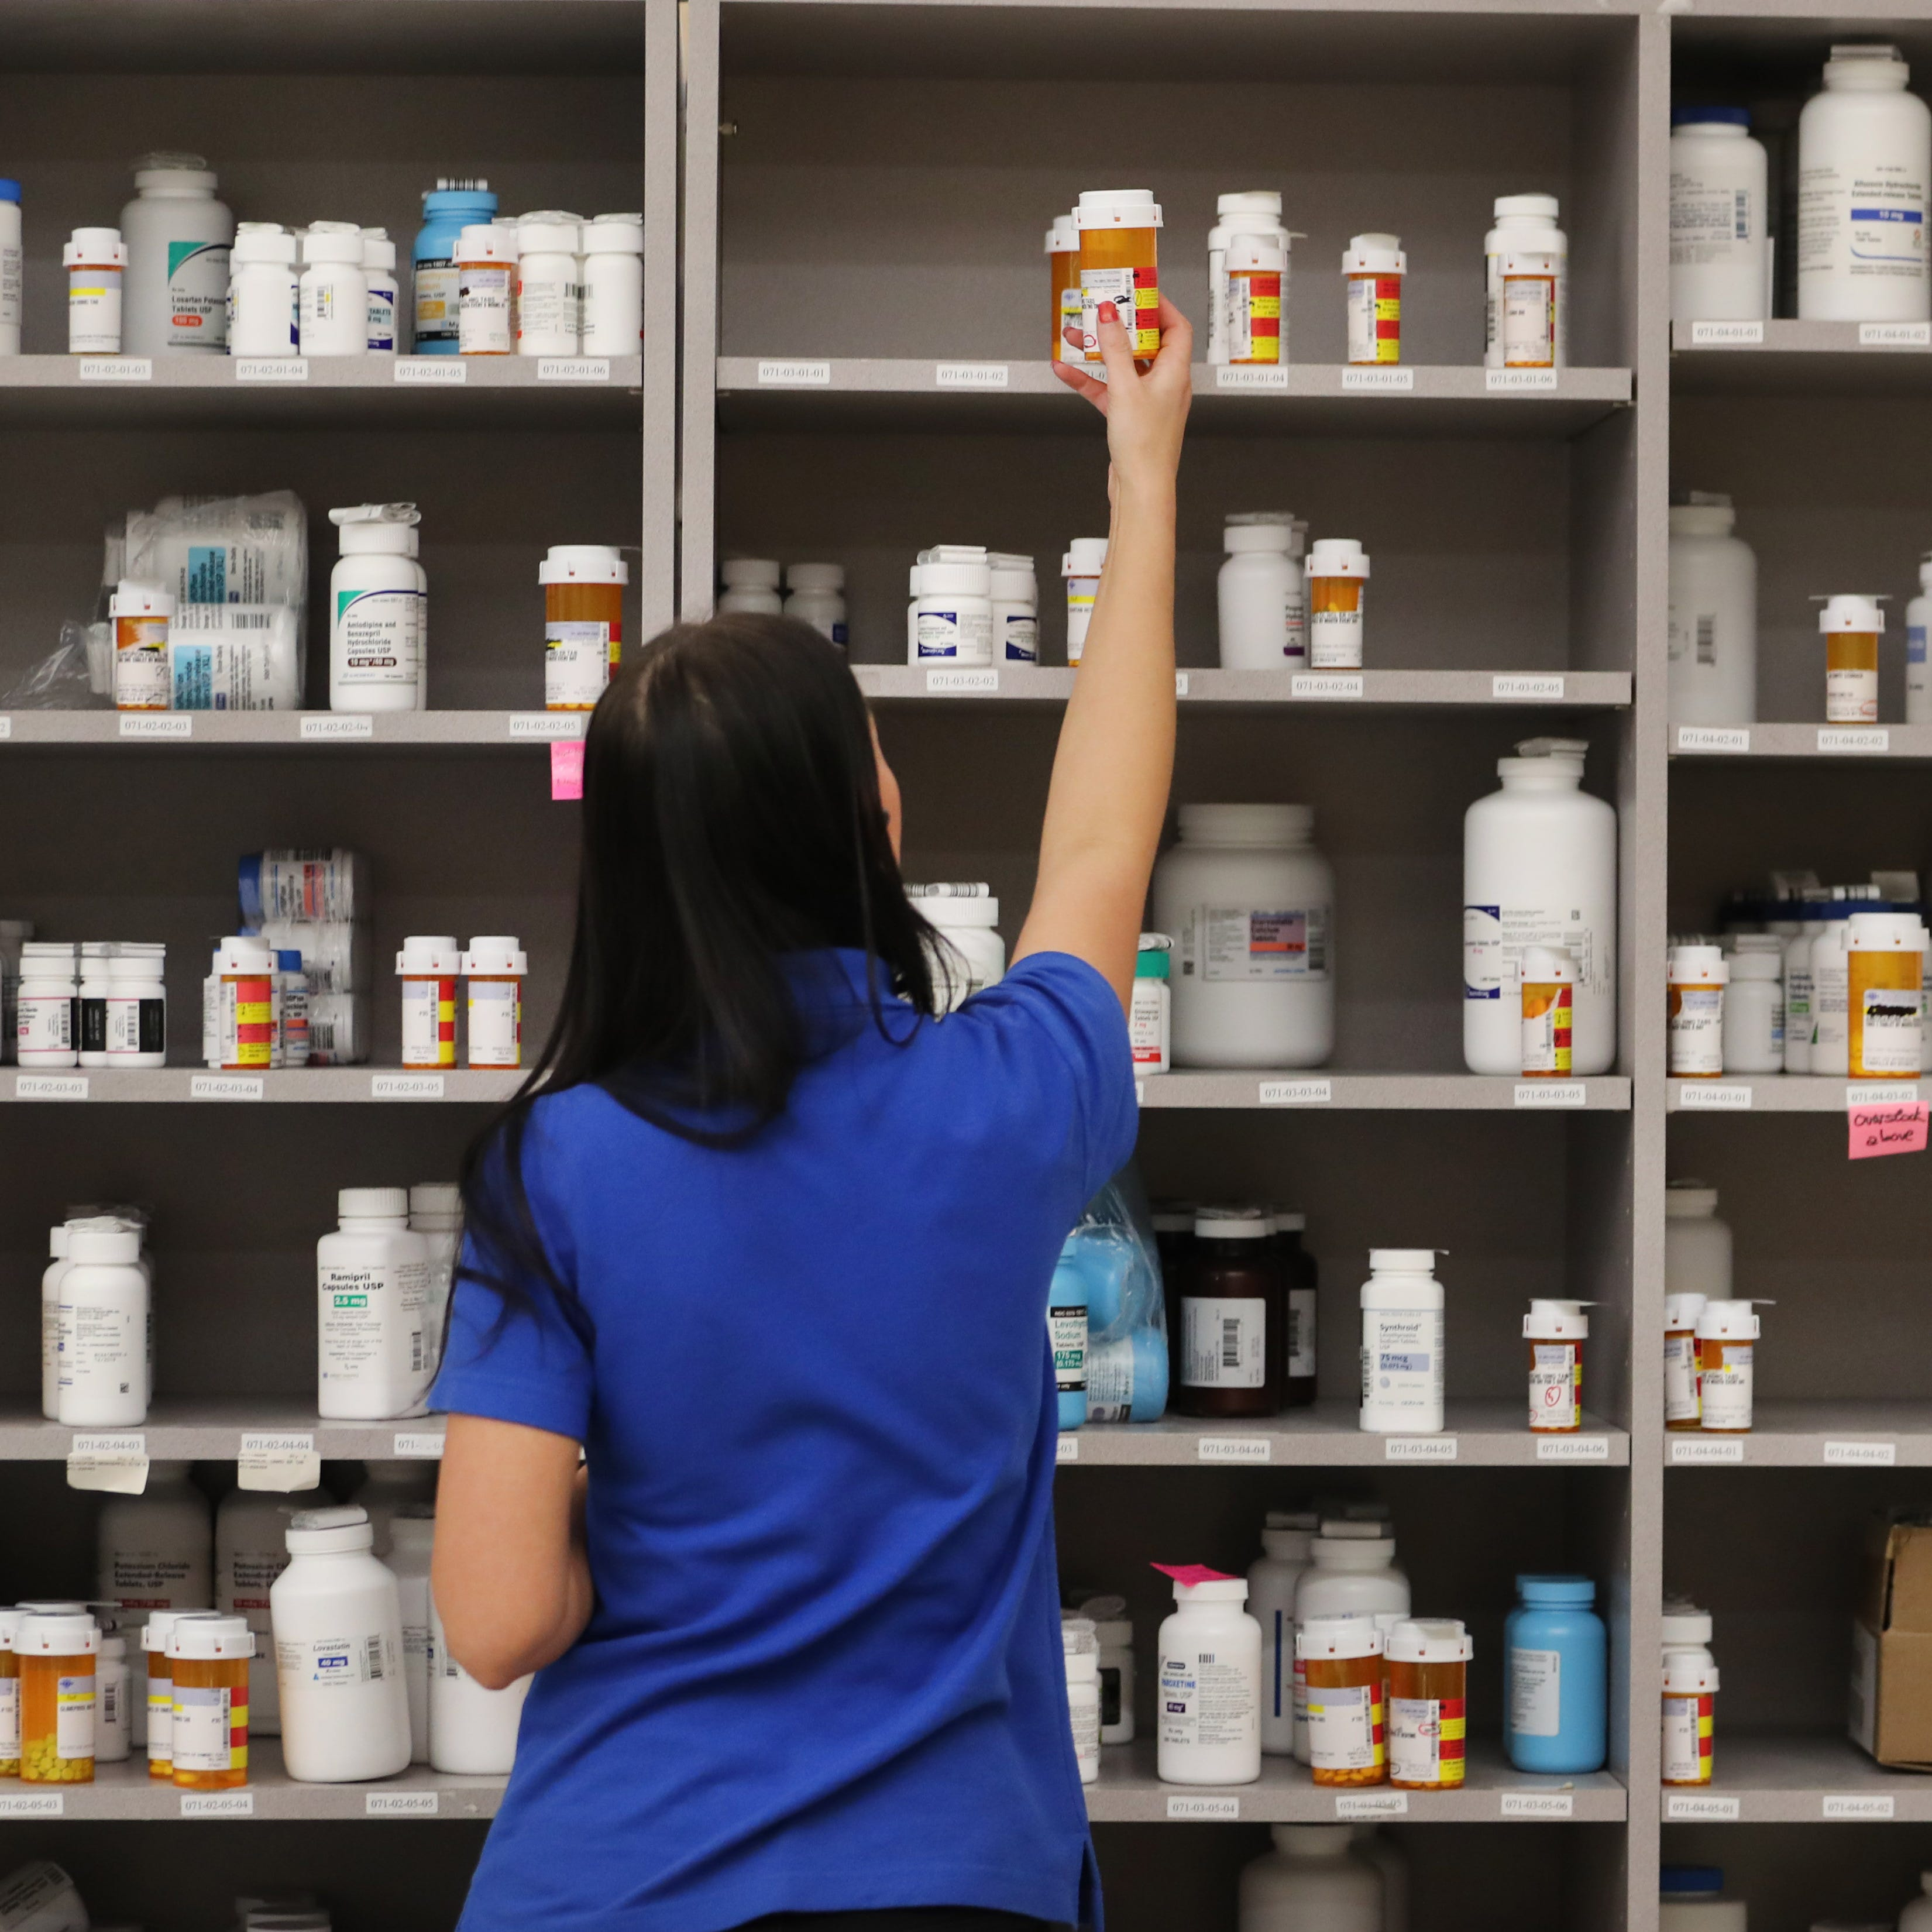 From urgent care to pharmacists, the struggle to get my kids antibiotics drove me to tears